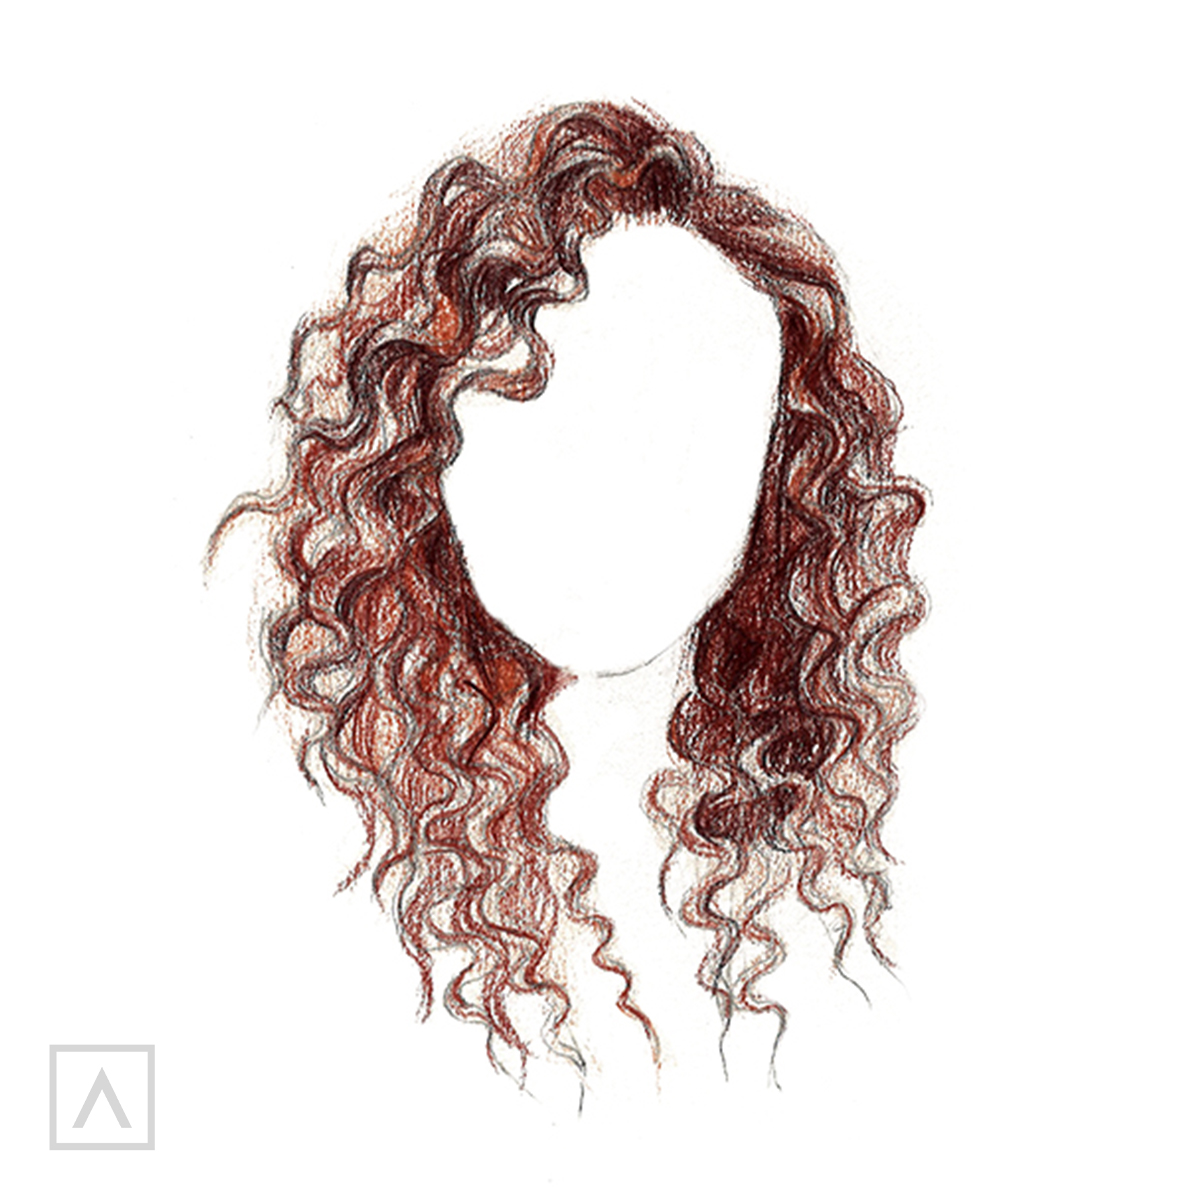 How to Draw Curly Hair - Step 11